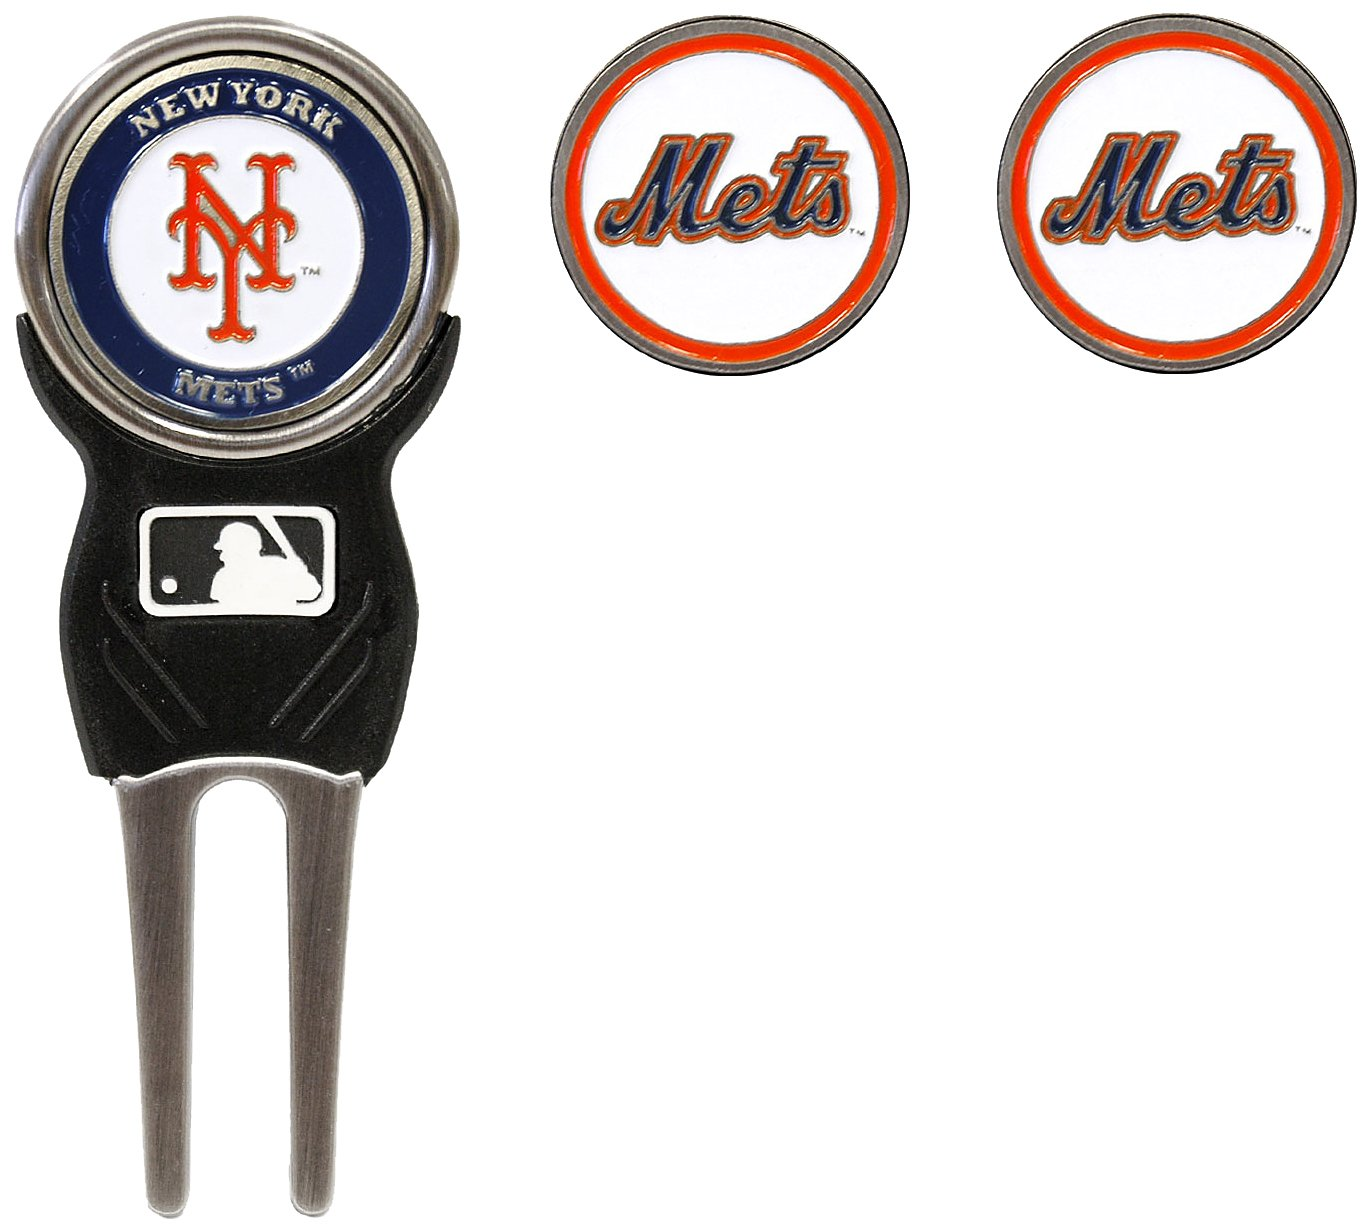 MLB New York Mets Divot Tool Pack With 3 Golf Ball Markers